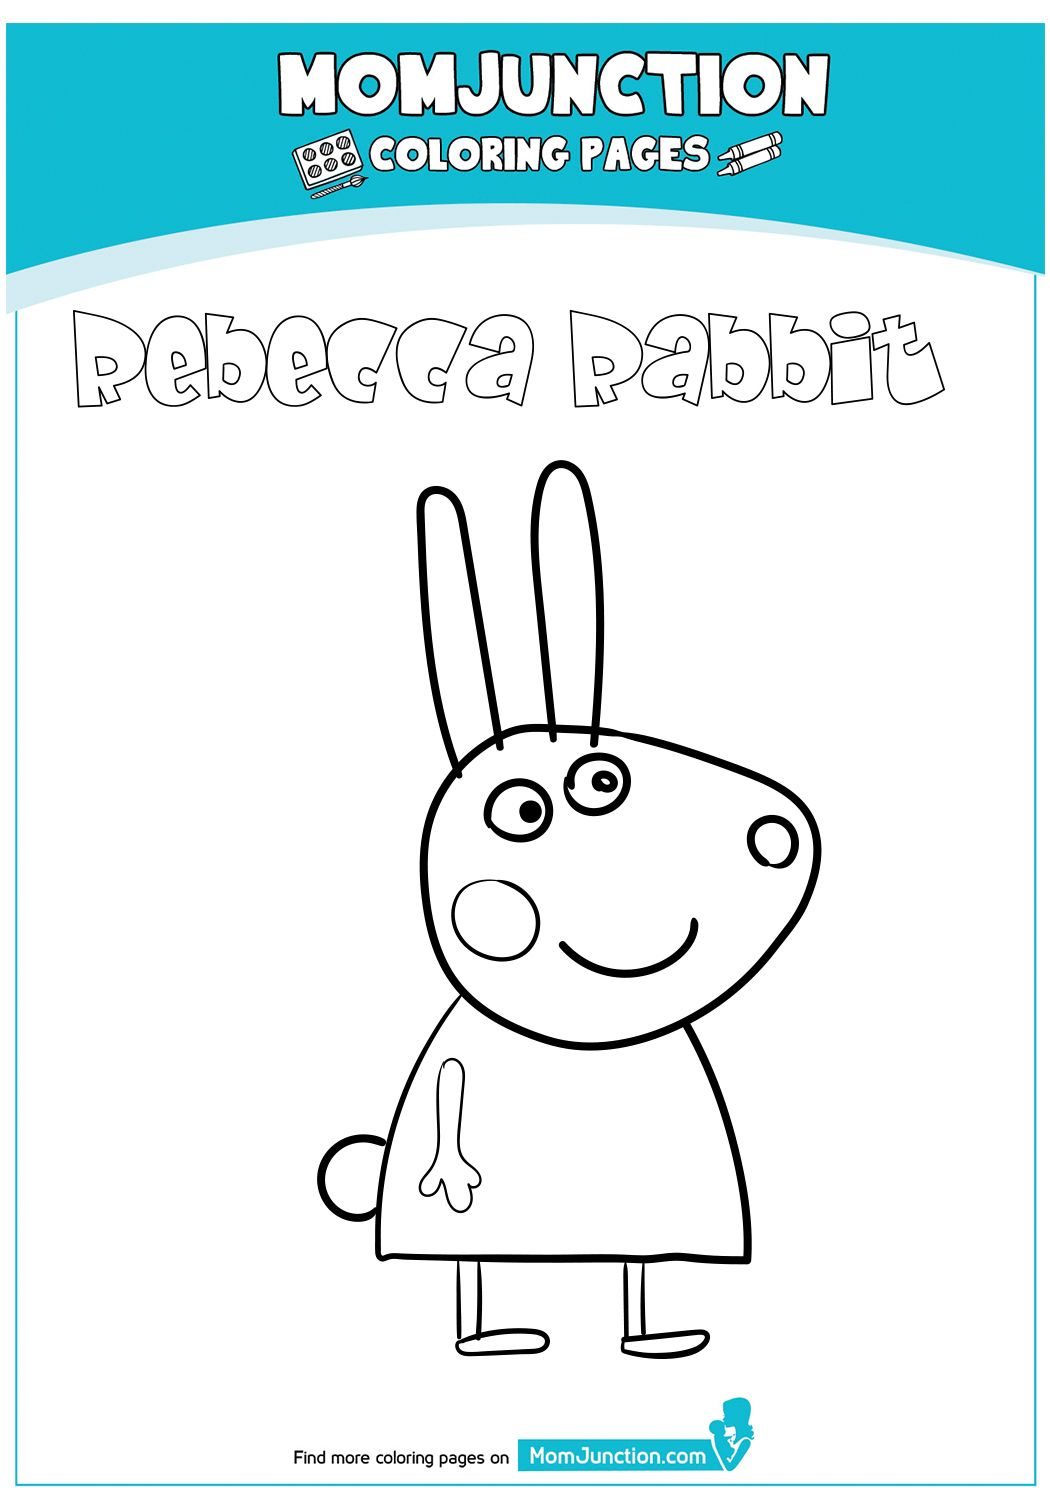 The Peppa Pig Coloring Page Peppa Pig Coloring Pages Coloring Pages Peppa Pig Colouring